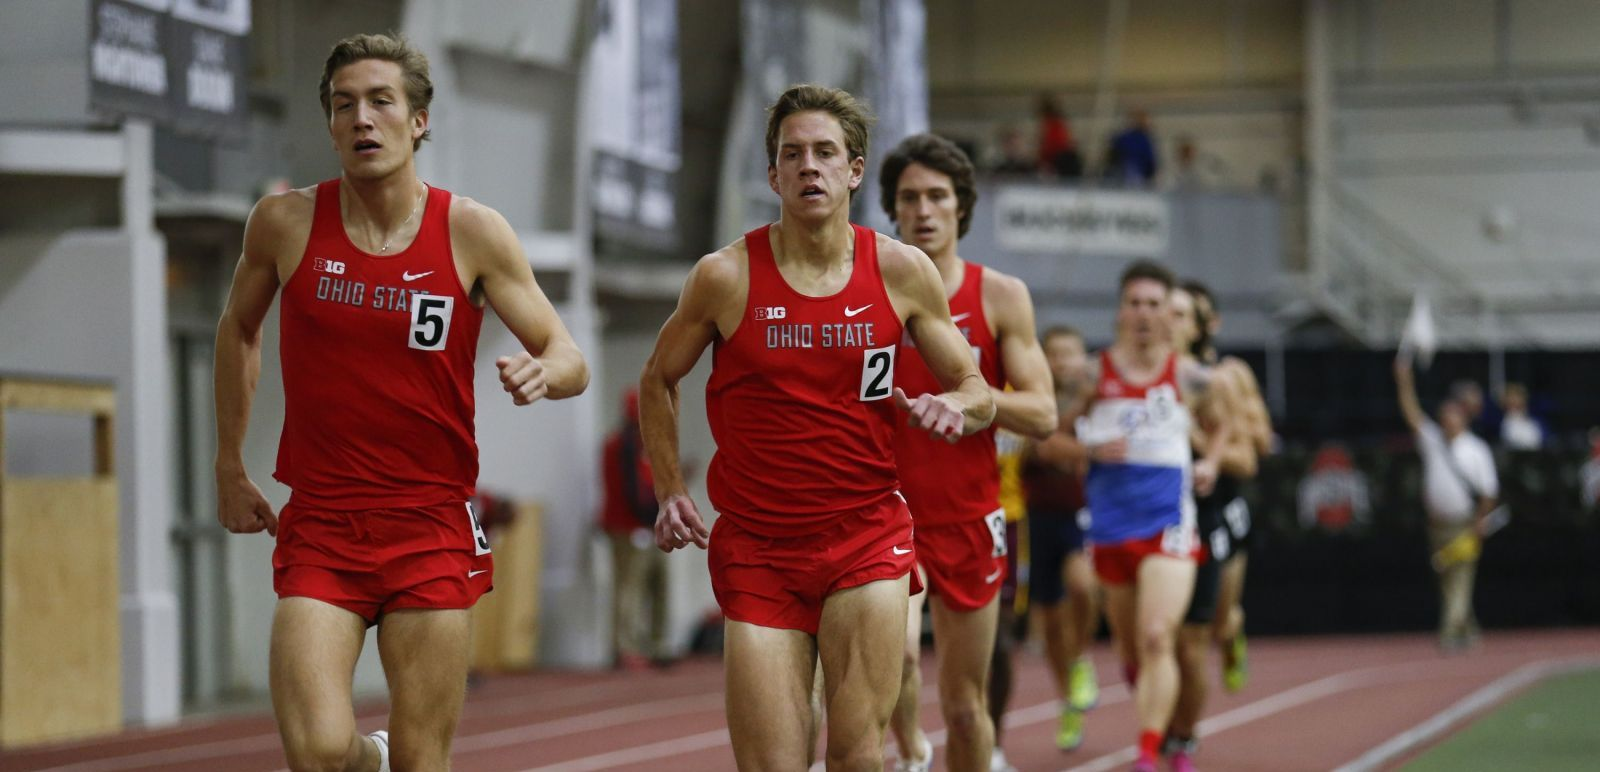 OSU Track Meet on Friday, January 6, 2017 at French Field House.  Mitch Leitch,  Jake Mandel